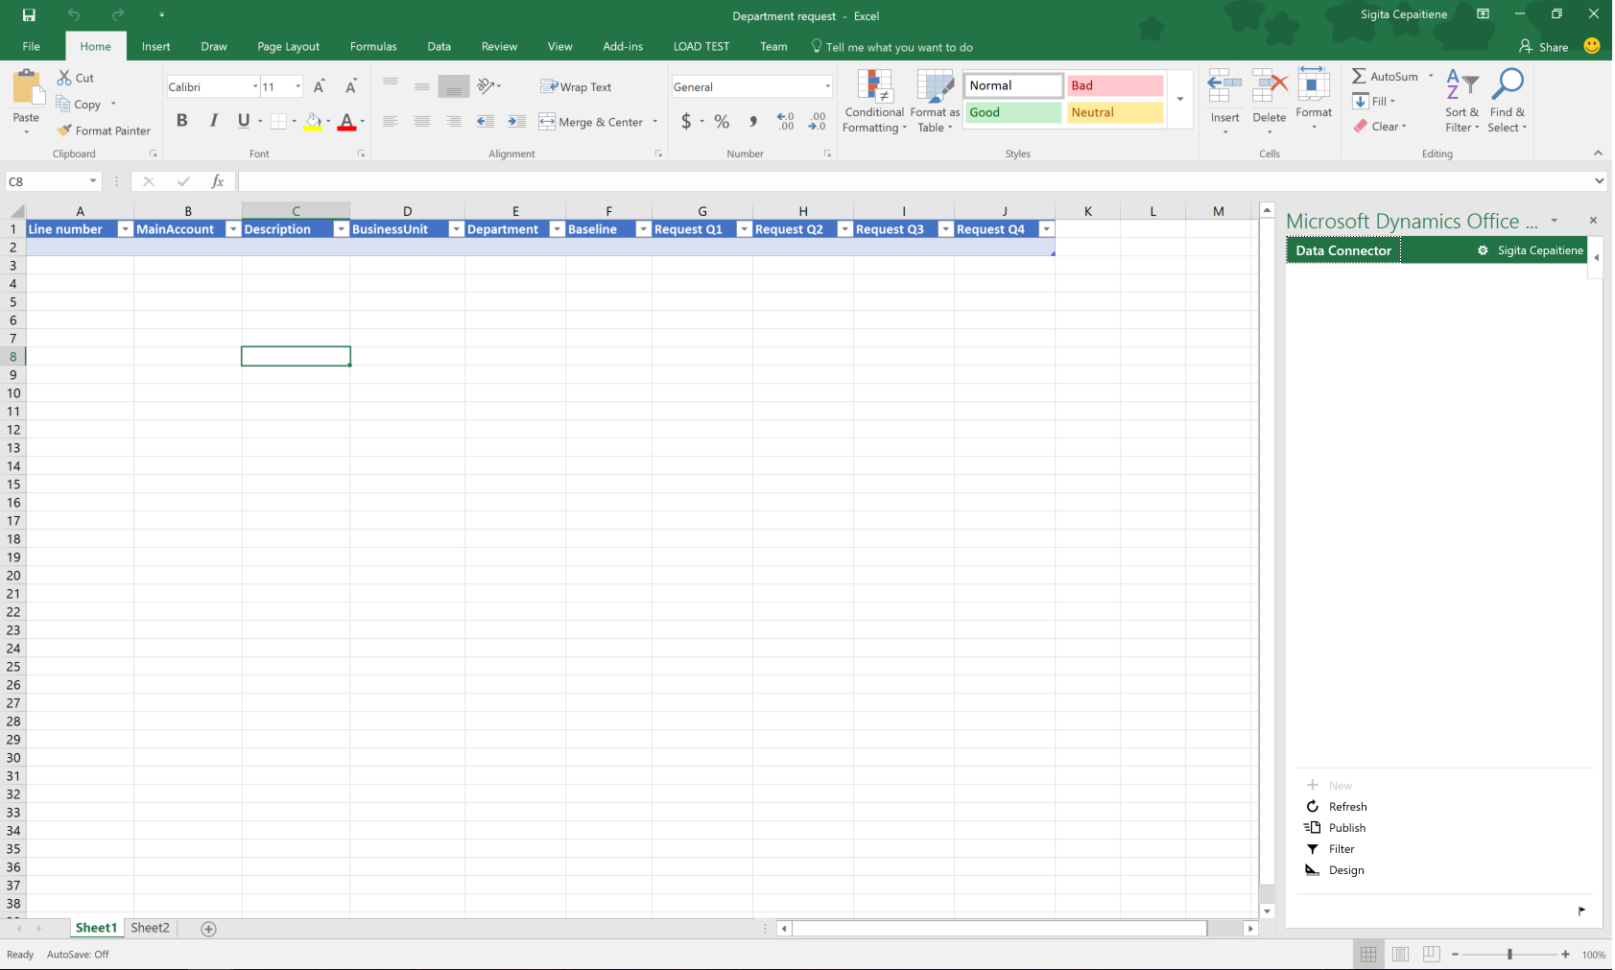 How To Share An Excel Spreadsheet With Multiple Users For Budget Planning Templates For Excel  Finance  Operations